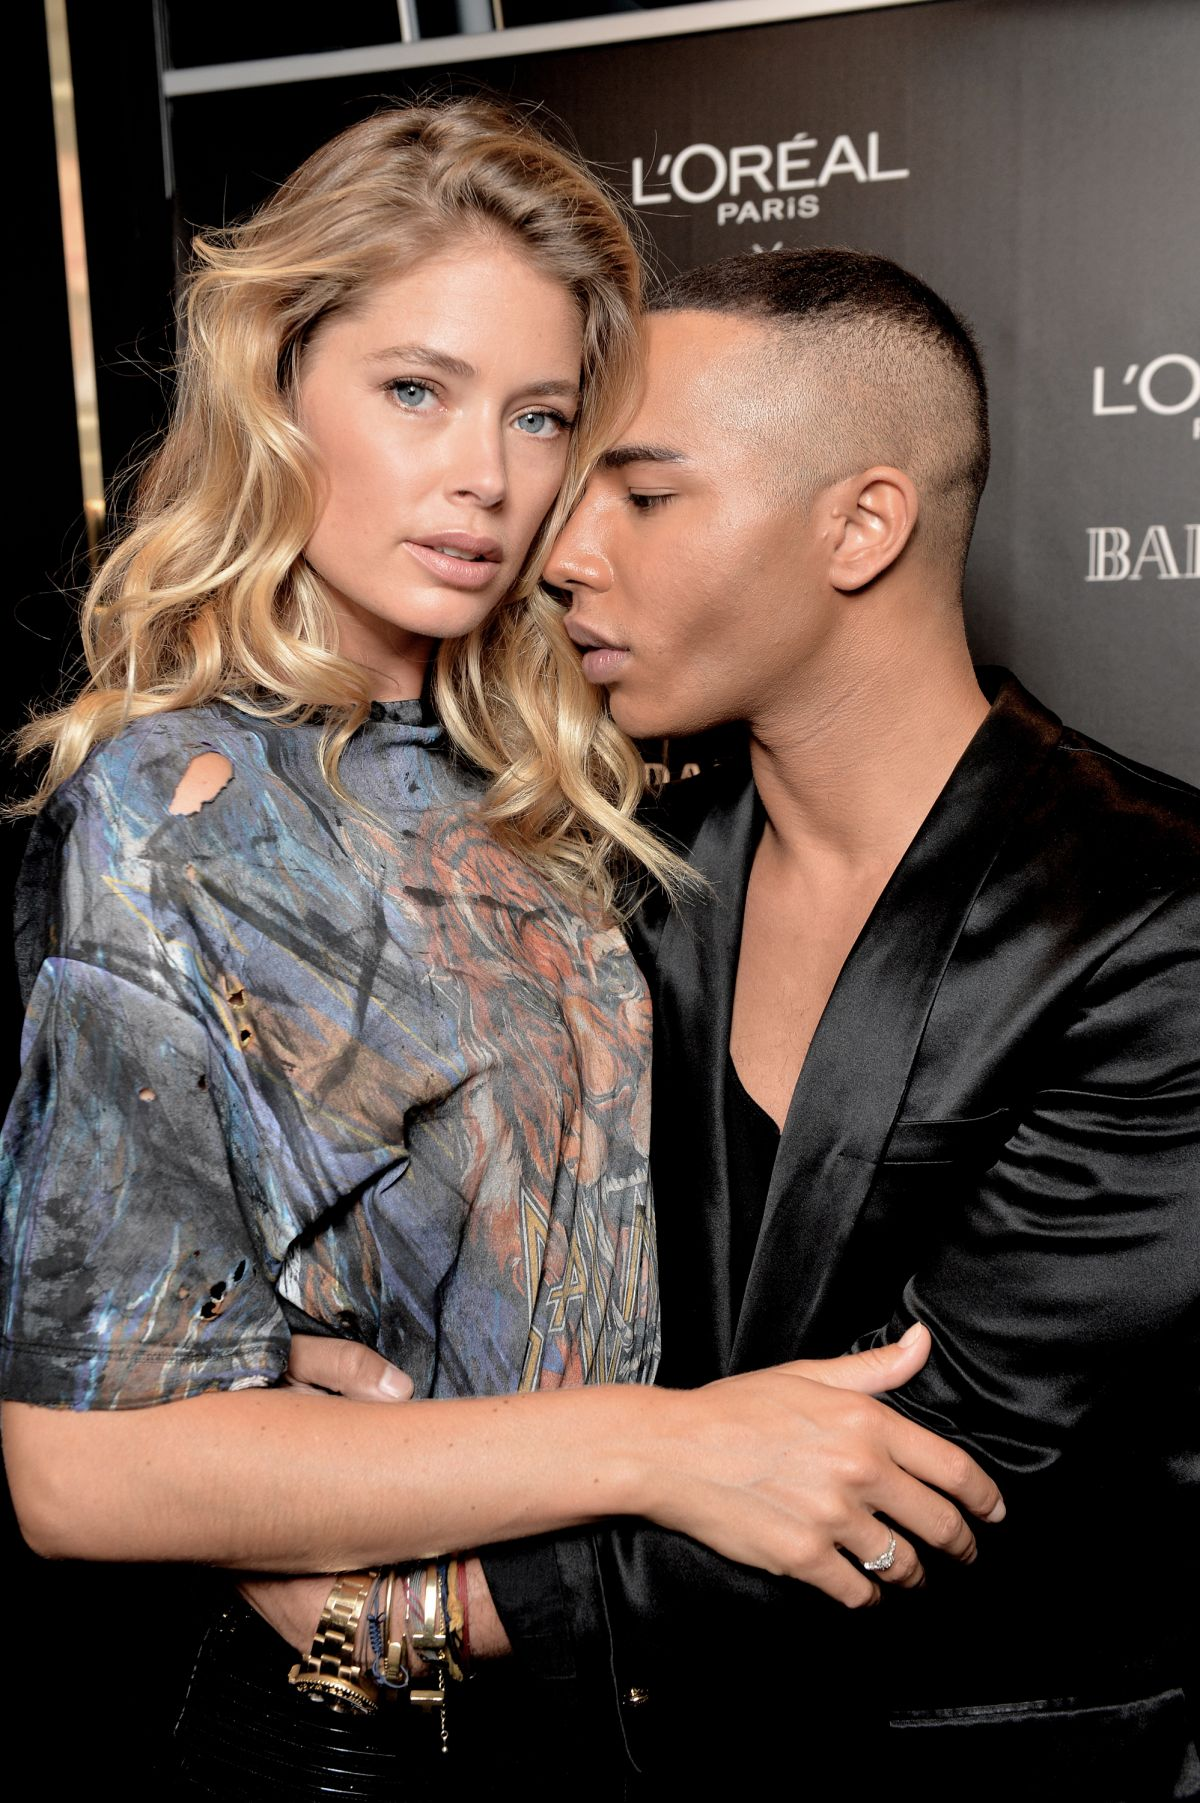 Doutzen Kroes attends Color Riche L'Oreal Paris x Balmain Premiere